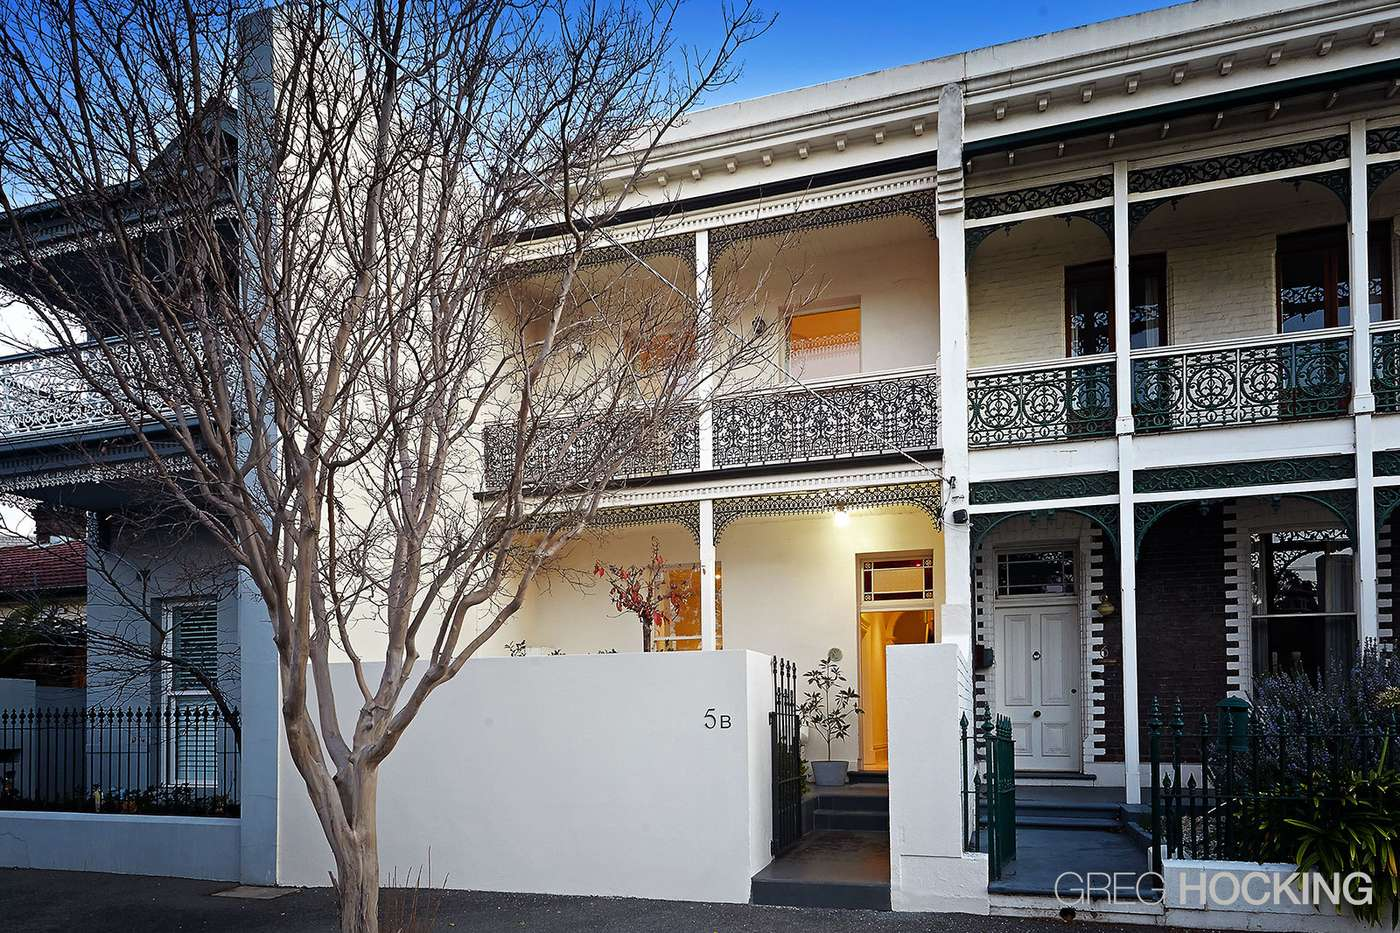 Main view of Homely house listing, 5b Madden Street, Albert Park, VIC 3206